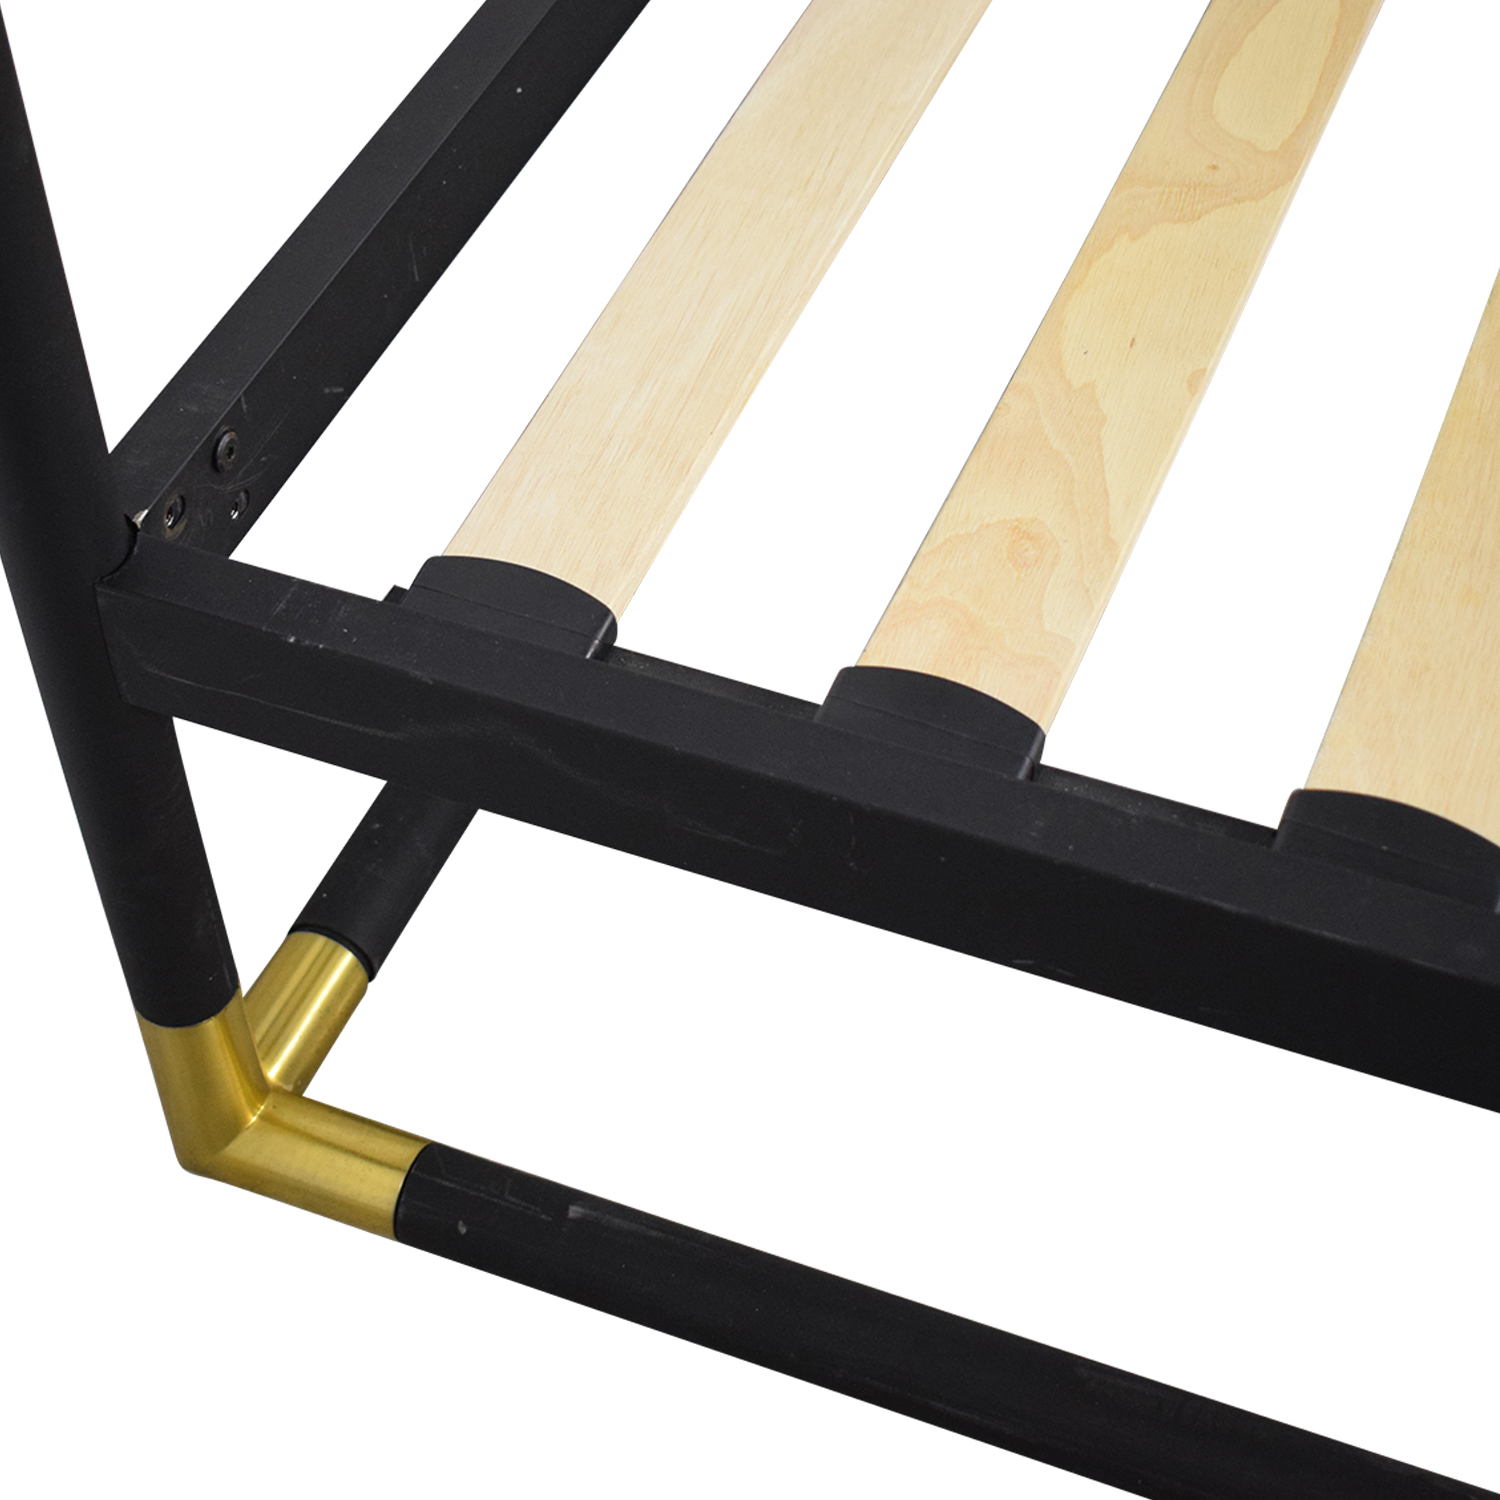 CB2 CB2 Frame Canopy Queen Bed second hand